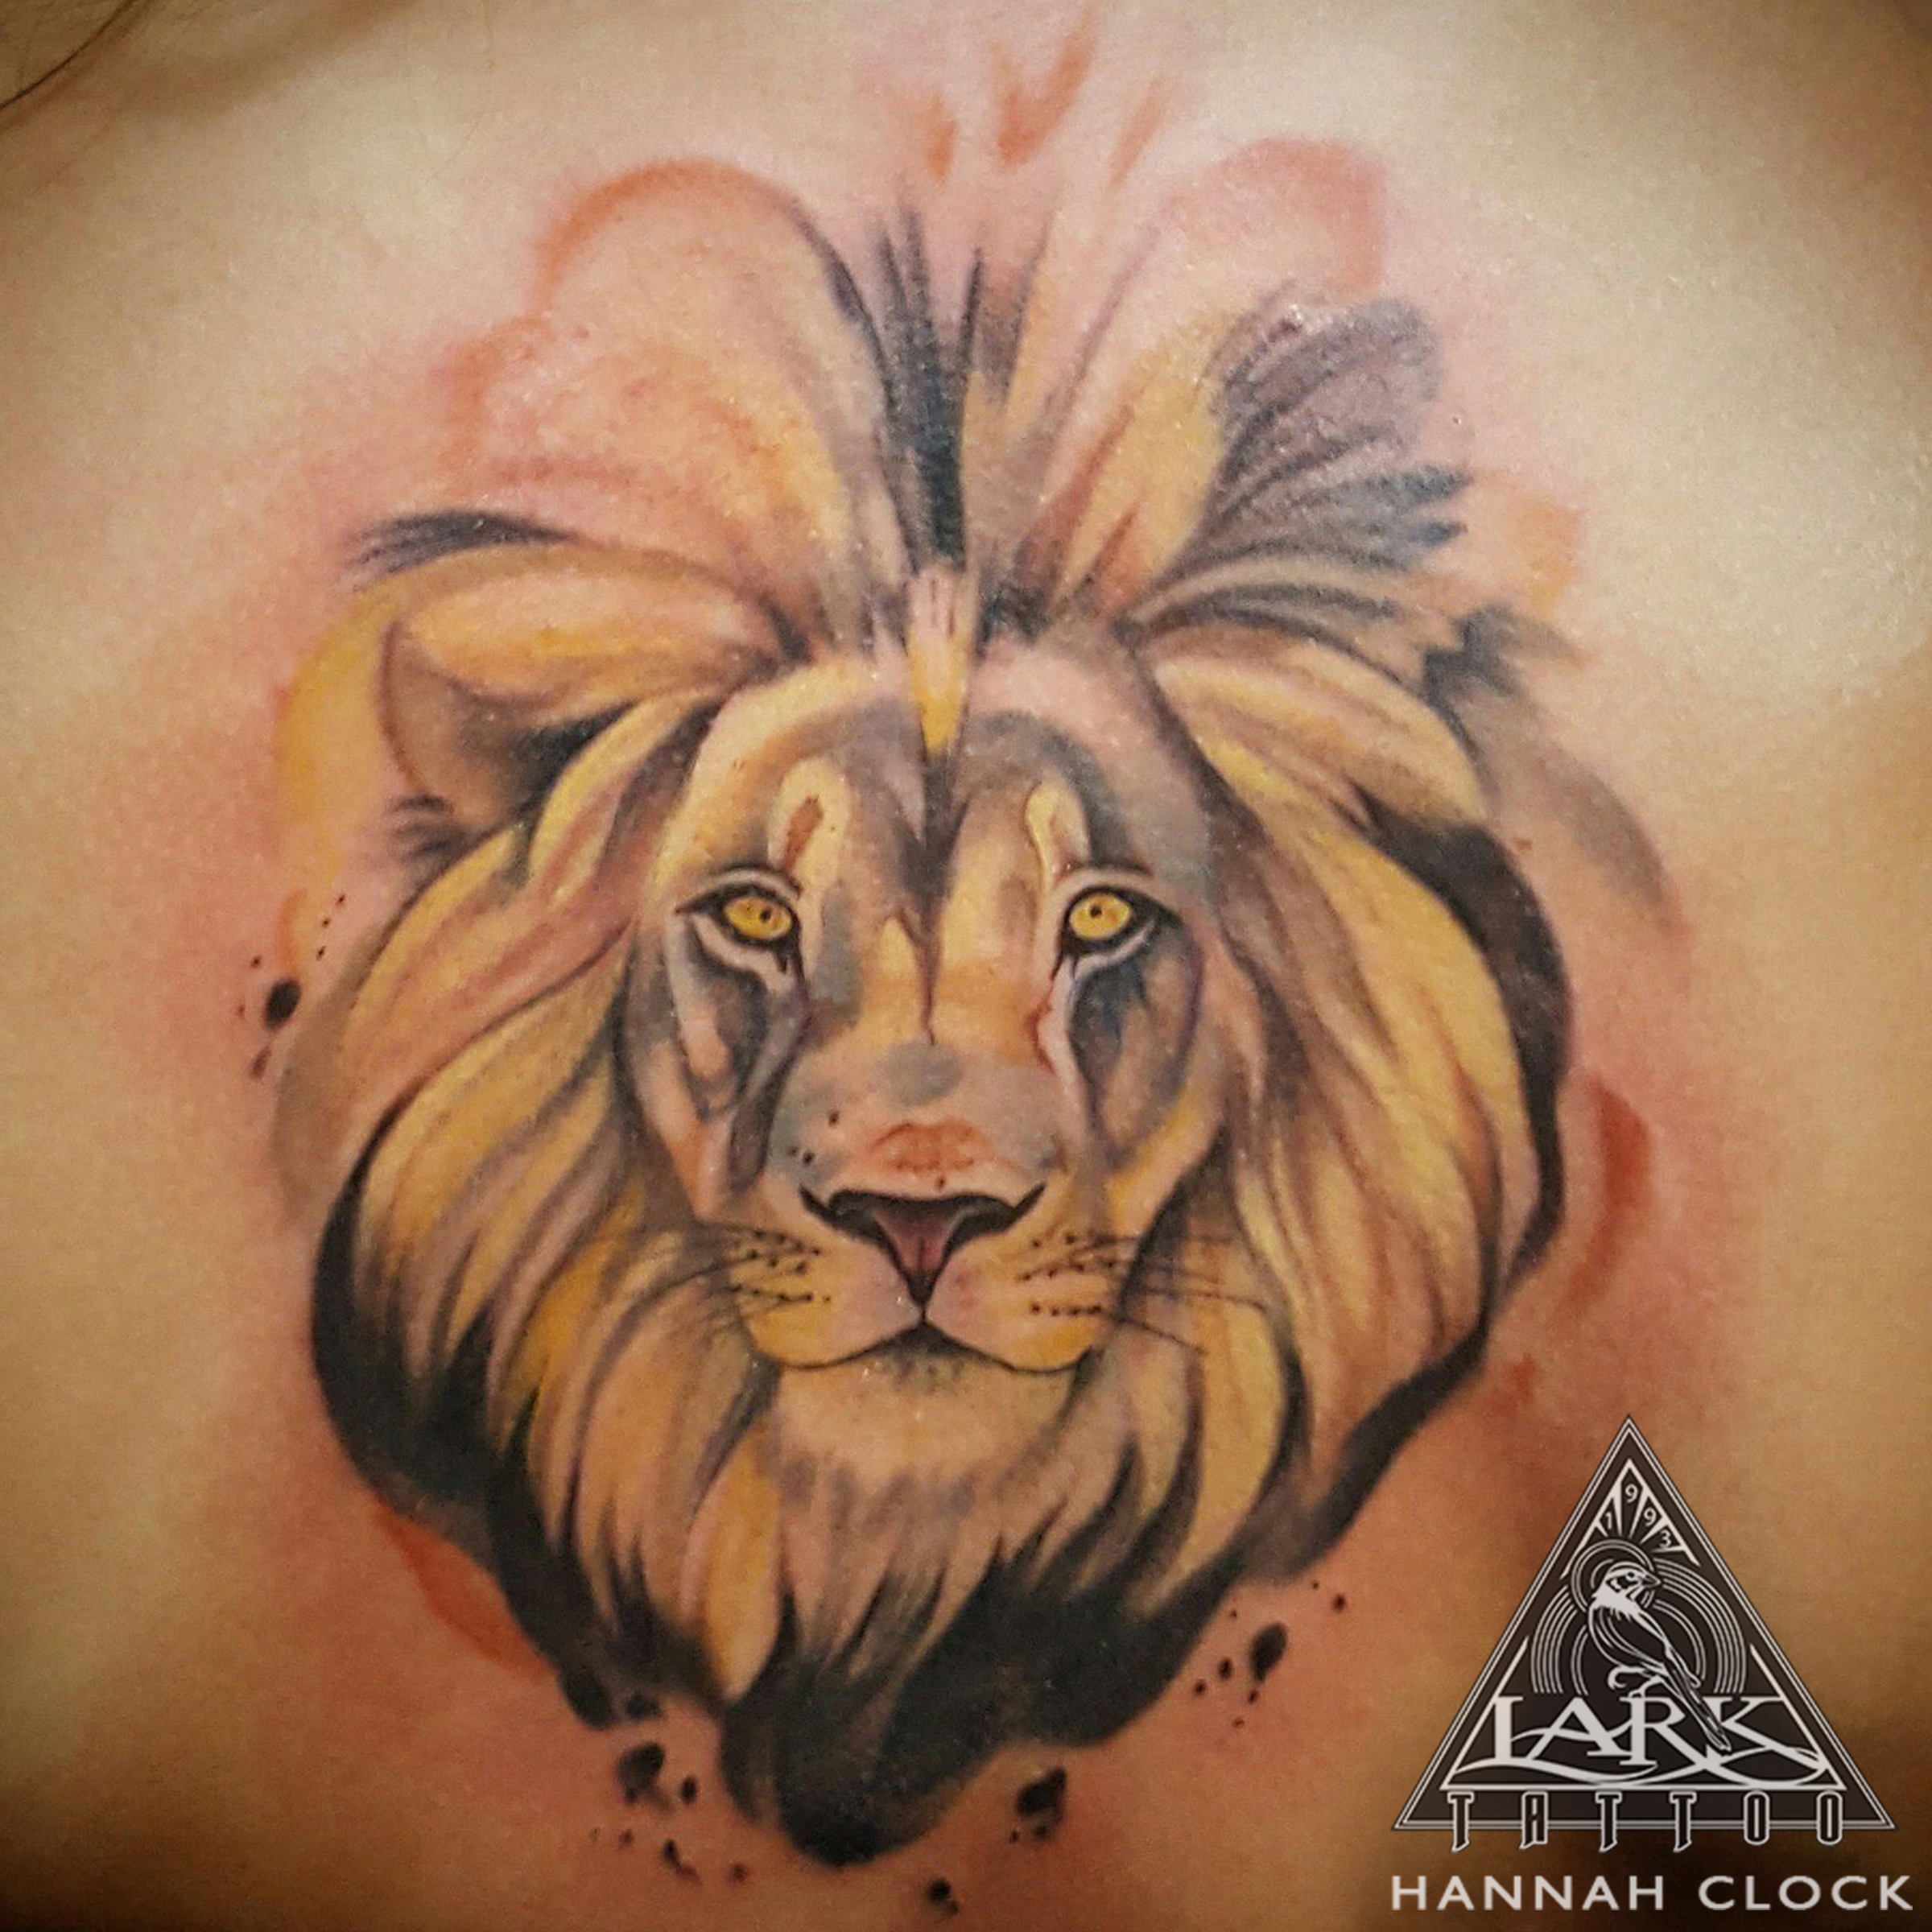 LarkTattoo, HannahClock, HannahClockTattoo, HannahClockLarkTattoo, FemaleTattooer, FemaleArtist, LadyTattooer, Tattoo, Tattoos, WaterColor, WaterColorTattoo, Lion, LionTattoo, WaterColorLion, WaterColorLionTattoo, AnimalTattoo, ColorTattoo, BigCat, BigCatTattoo, Cattoo , TattooArtist, Tattoist, Tattooer, LongIslandTattooArtist, LongIslandTattooer, LongIslandTattoo, TattooOfTheDay, Tat, Tats, Tatts, Tatted, Inked, Ink, TattooInk, AmazingInk, AmazingTattoo, BodyArt, LarkTattooWestbury, Westbury, LongIsland, NY, NewYork, USA, Art, Tattedup, InkedUp, LarkTattoos